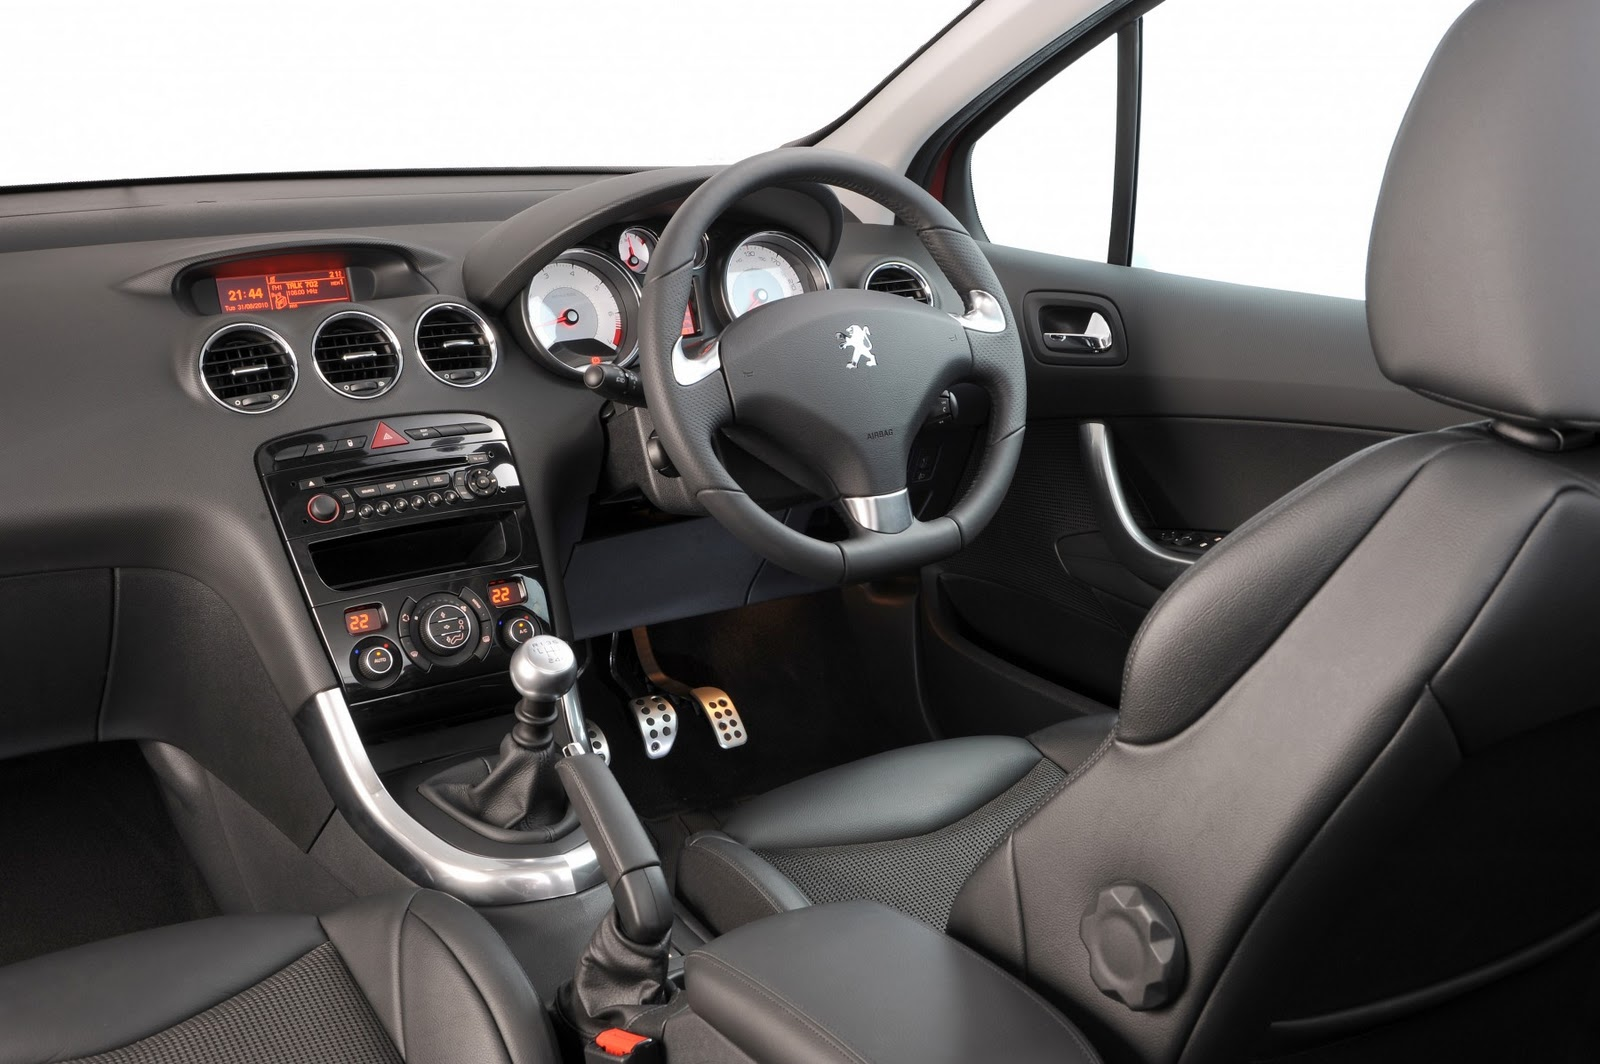 Peugeot 308 gti technical details history photos on for Interior peugeot 308